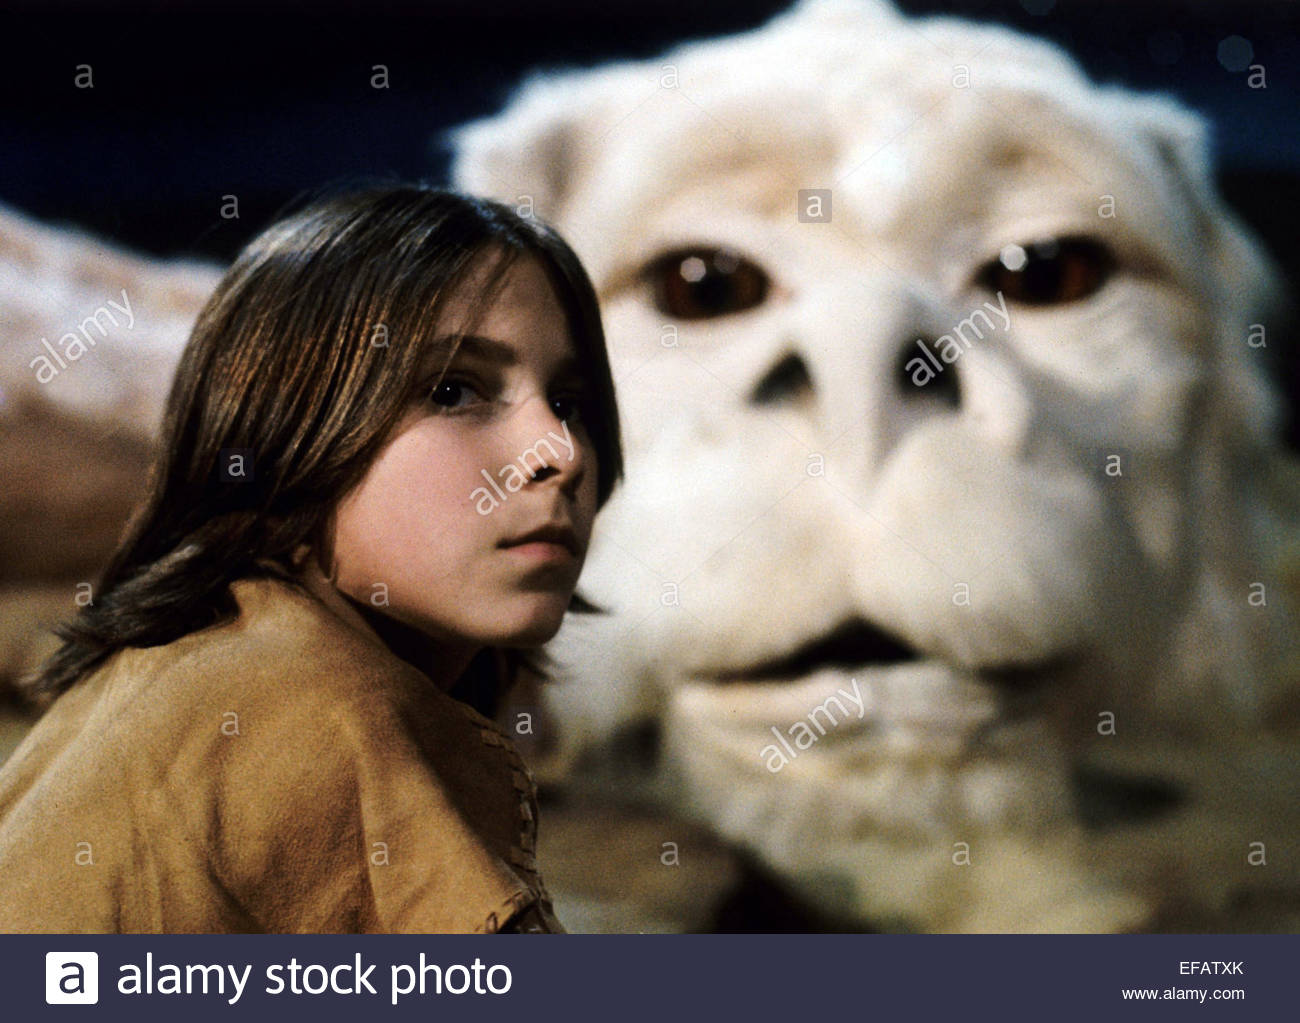 NOAH HATHAWAY THE NEVERENDING STORY (1984 Stock Photo ...